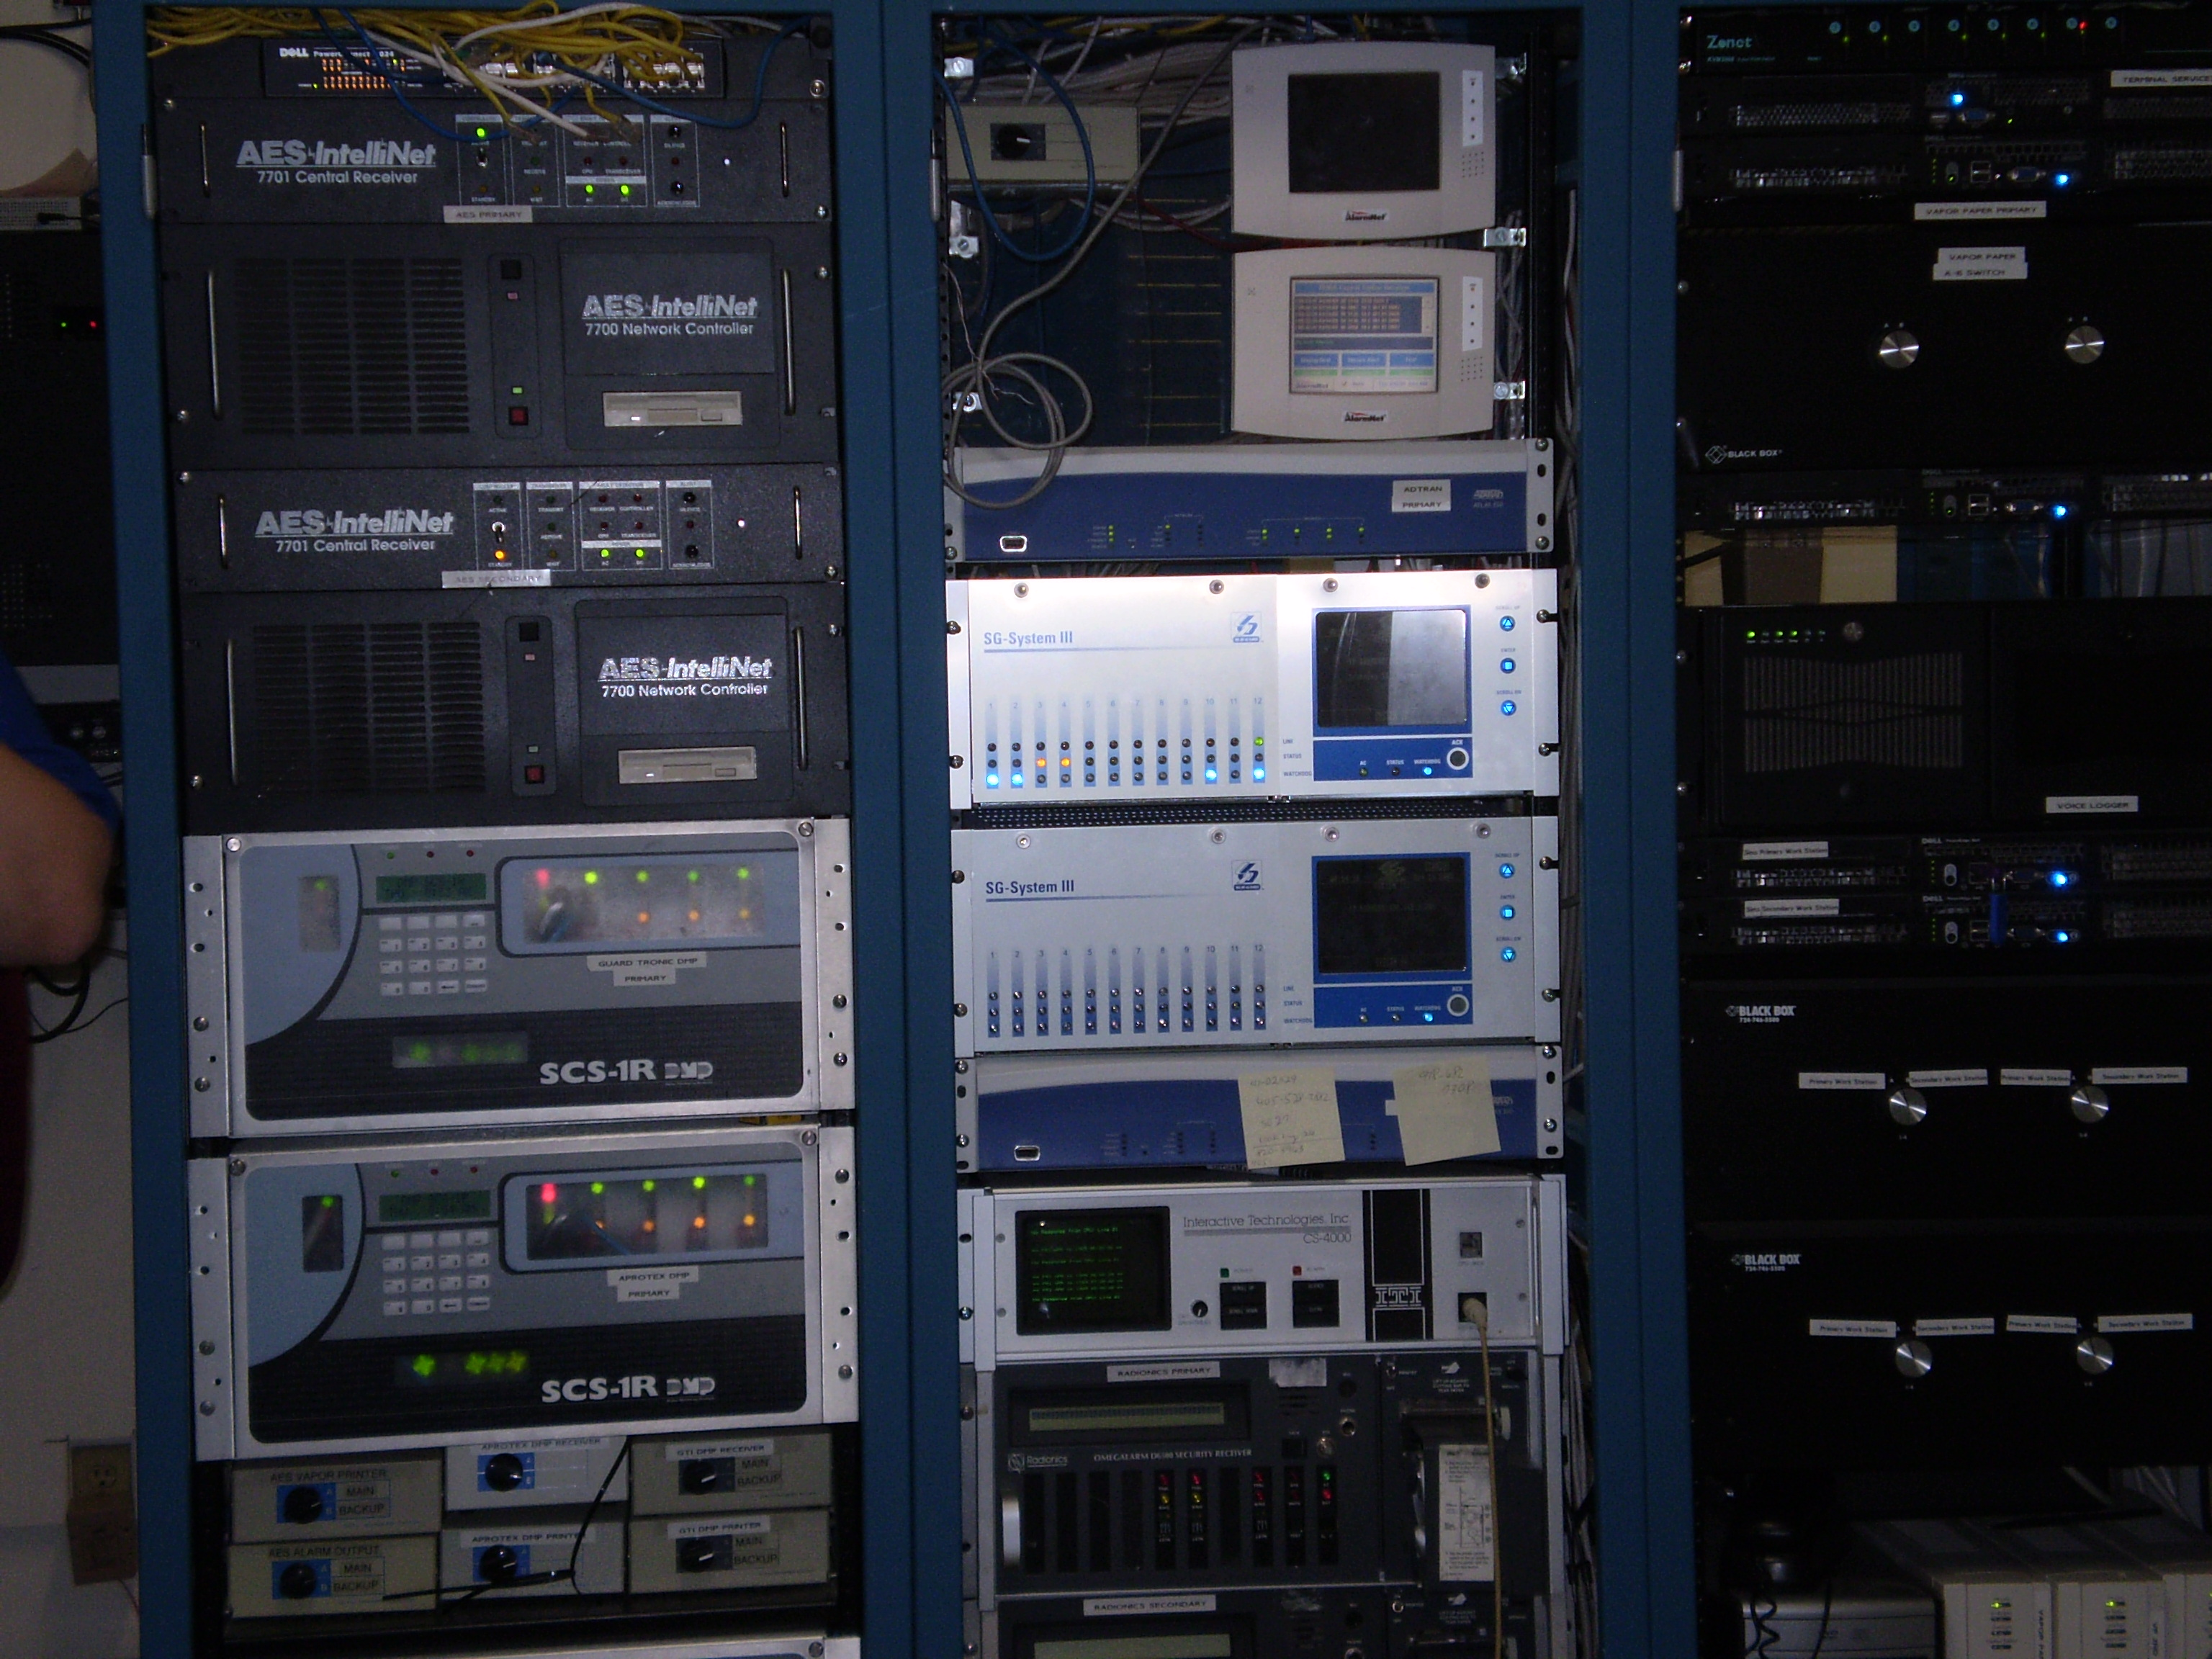 AES, DMP, AlarmNet, and SurGard receivers